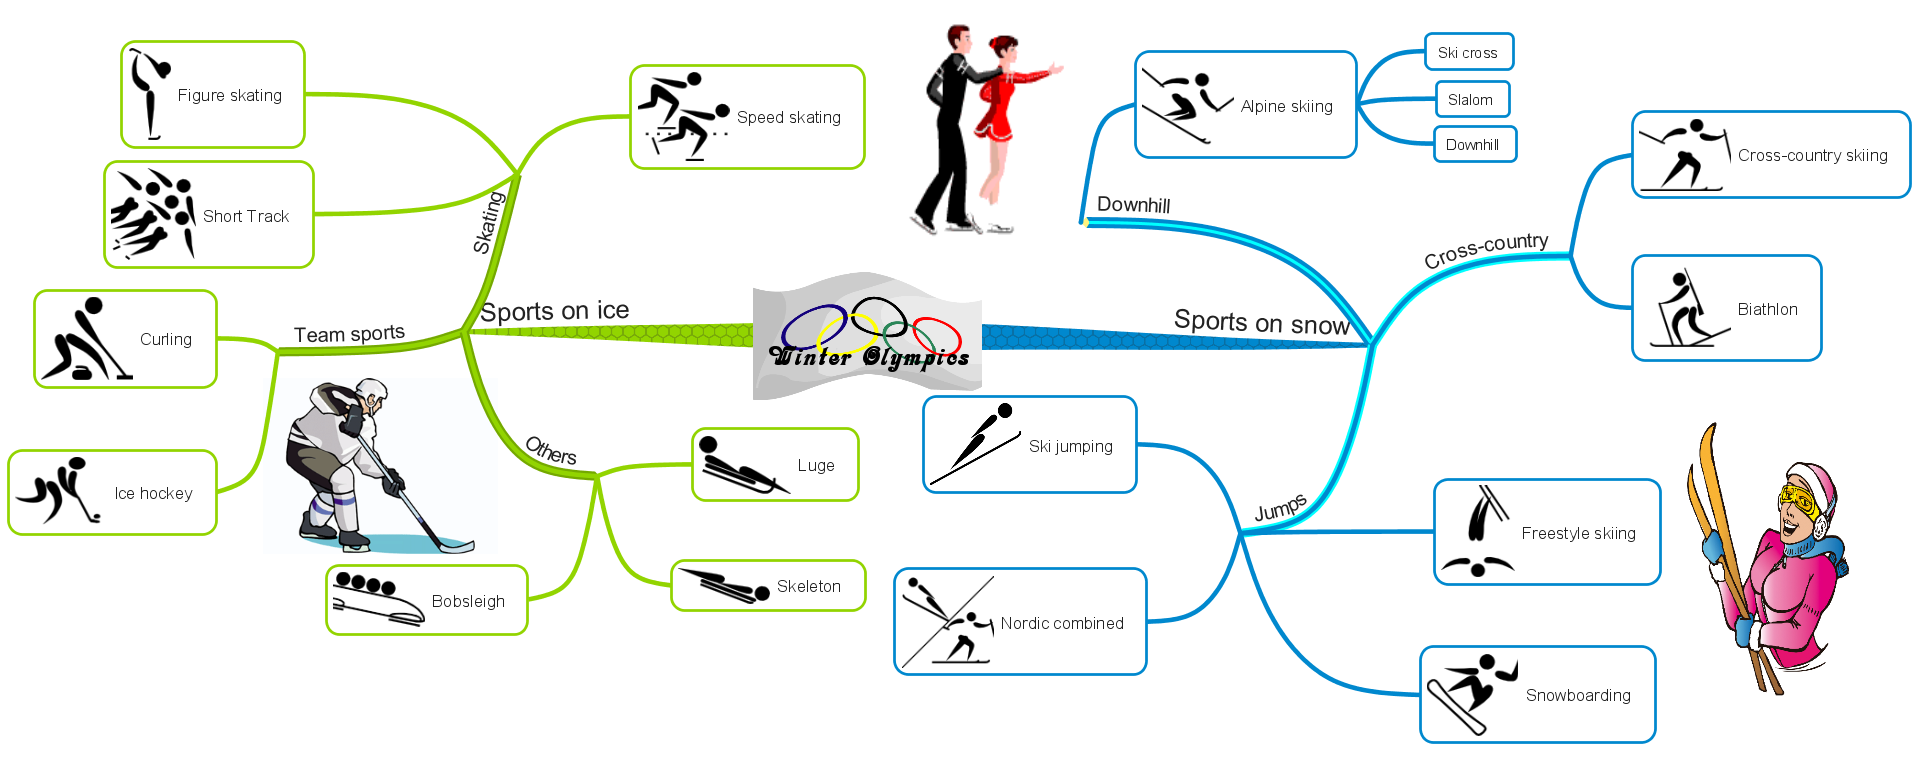 Winter olympic sports mind map